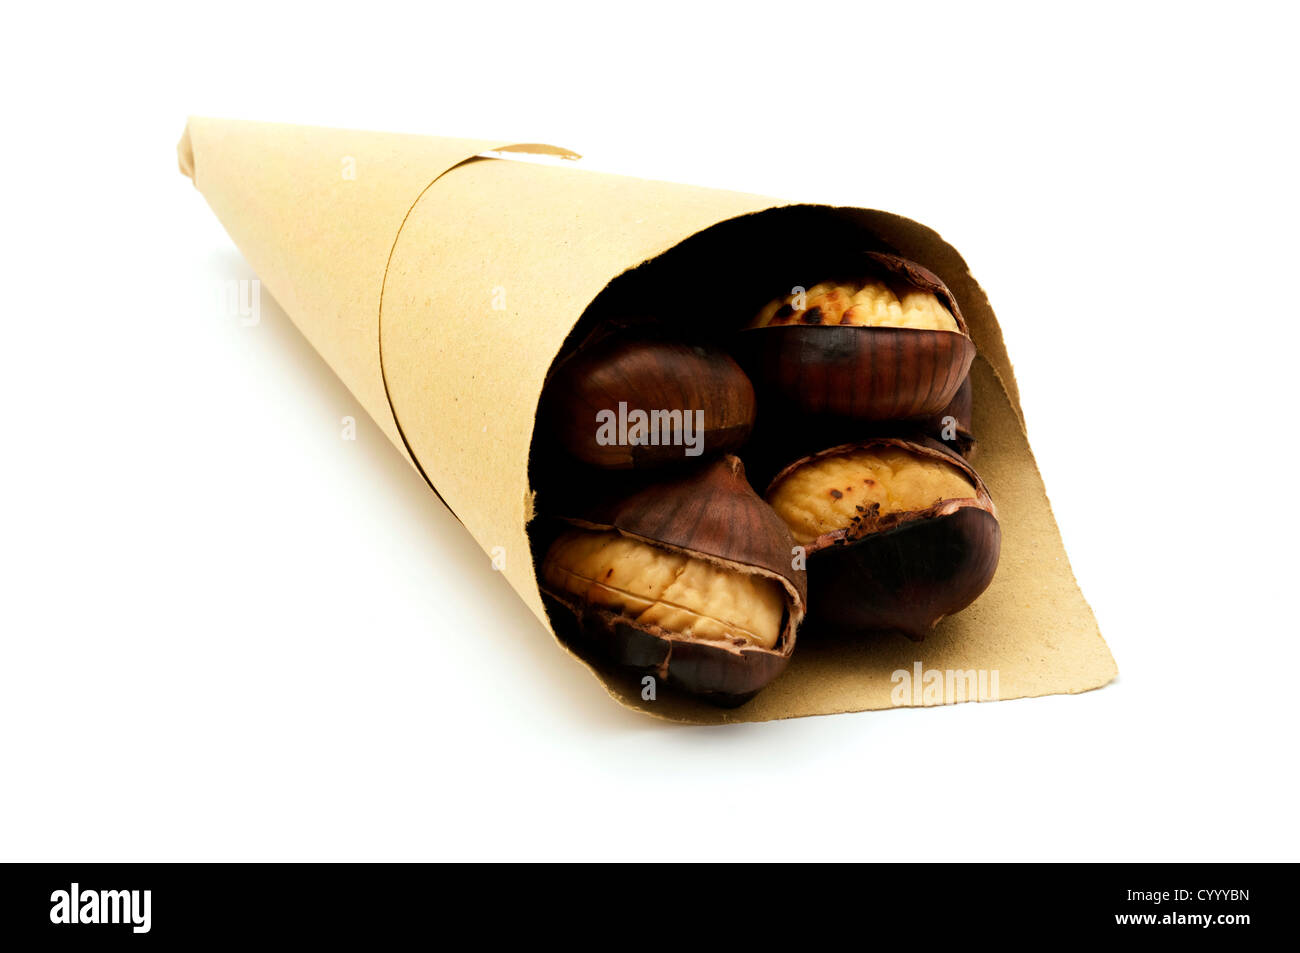 Roasted chestnuts in a paper cone on a white background - Stock Image